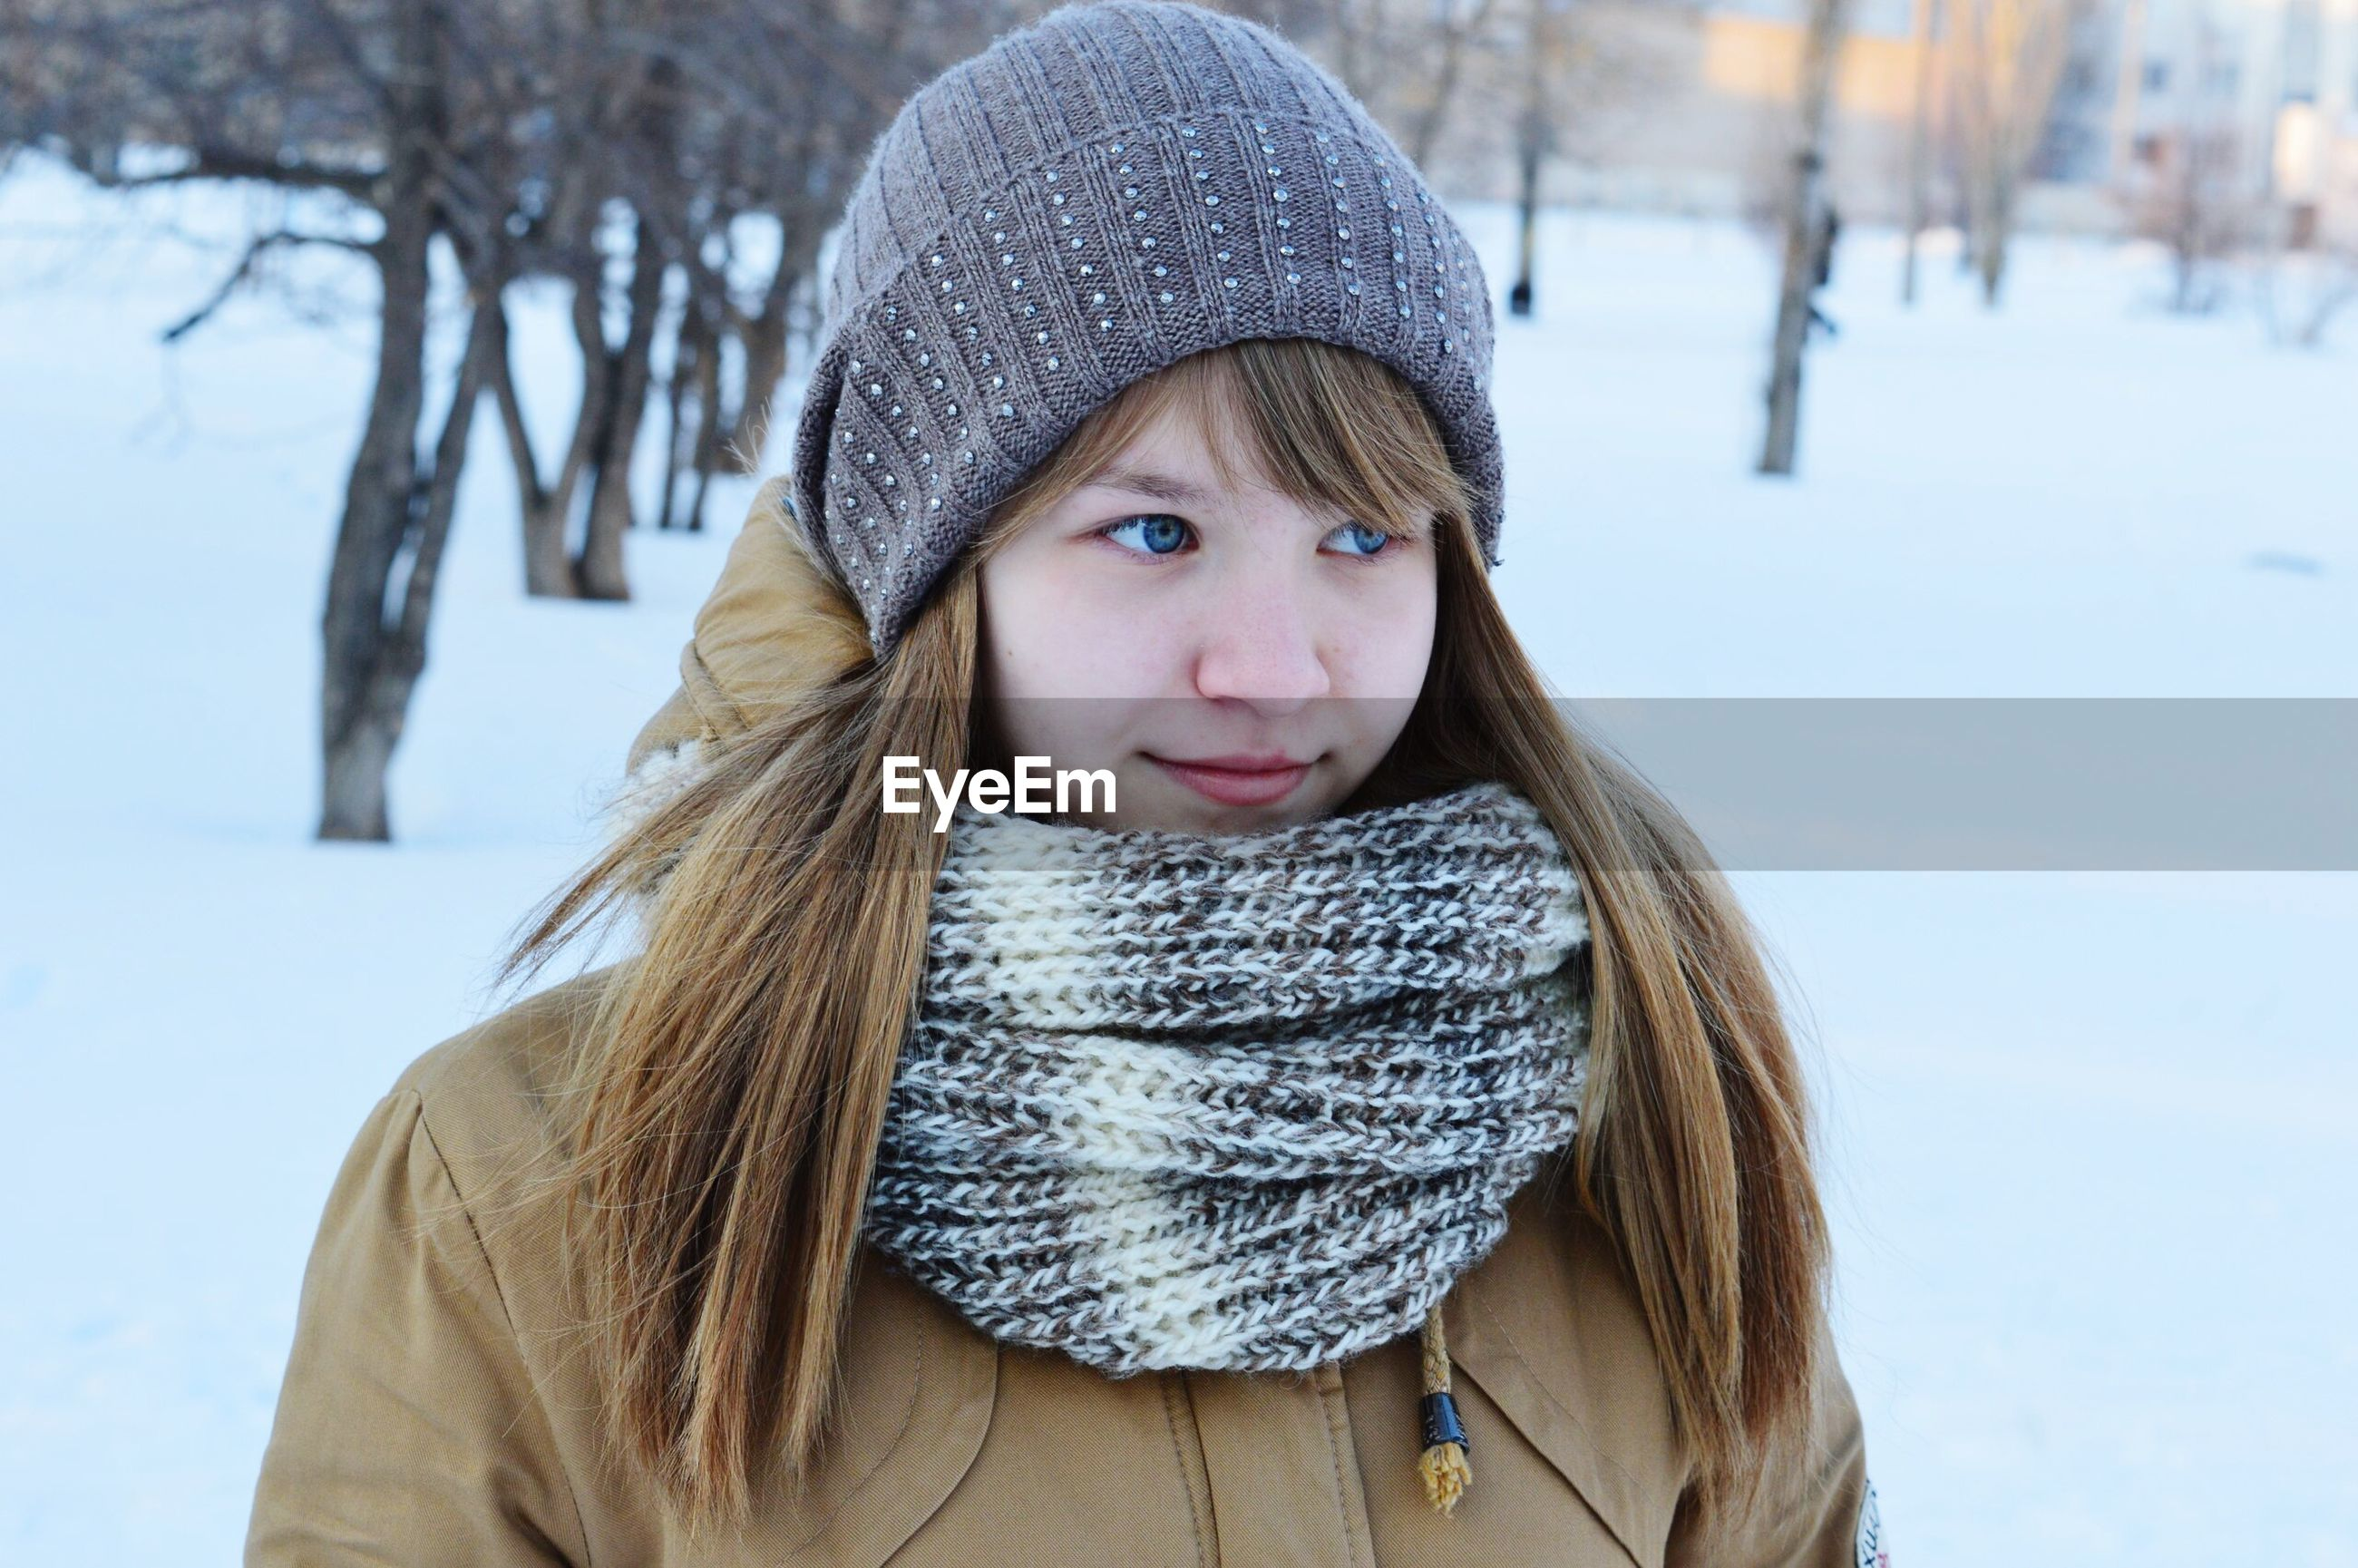 portrait, person, looking at camera, winter, front view, warm clothing, focus on foreground, lifestyles, young adult, cold temperature, headshot, snow, smiling, casual clothing, leisure activity, season, jacket, young women